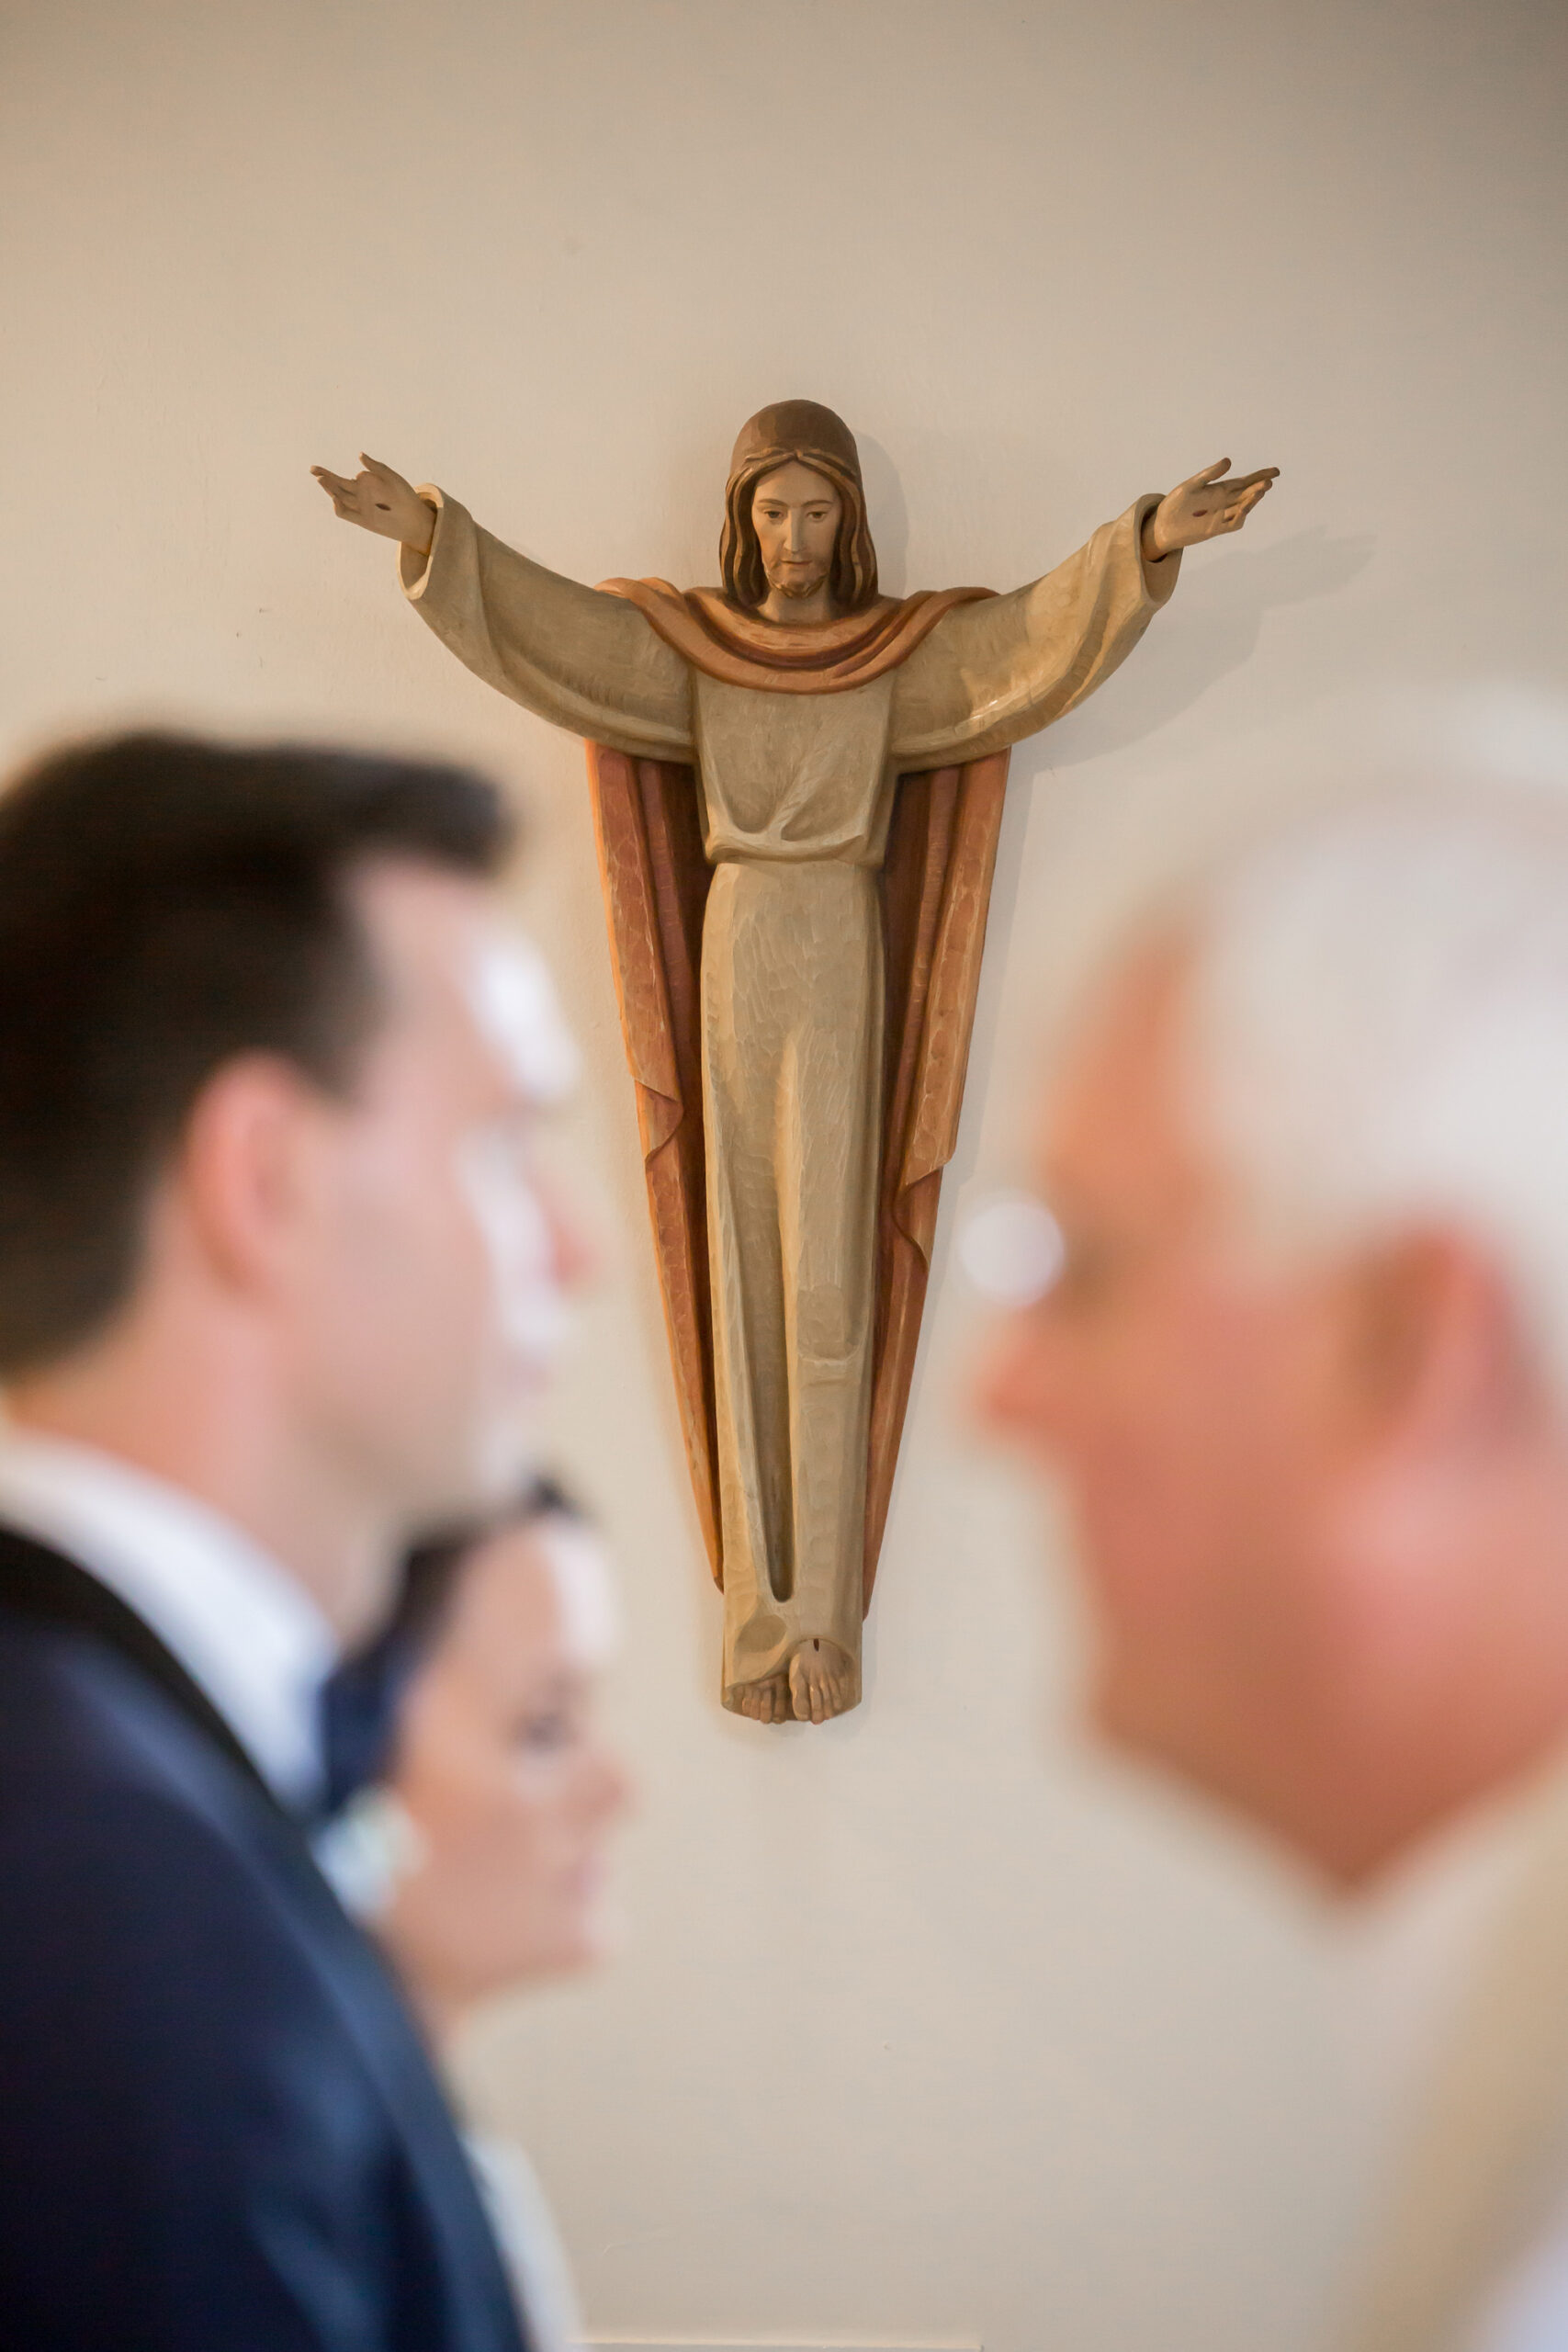 shot of a statue of christ during the wedding ceremony with bride and groom and priest out of focus in the foreground